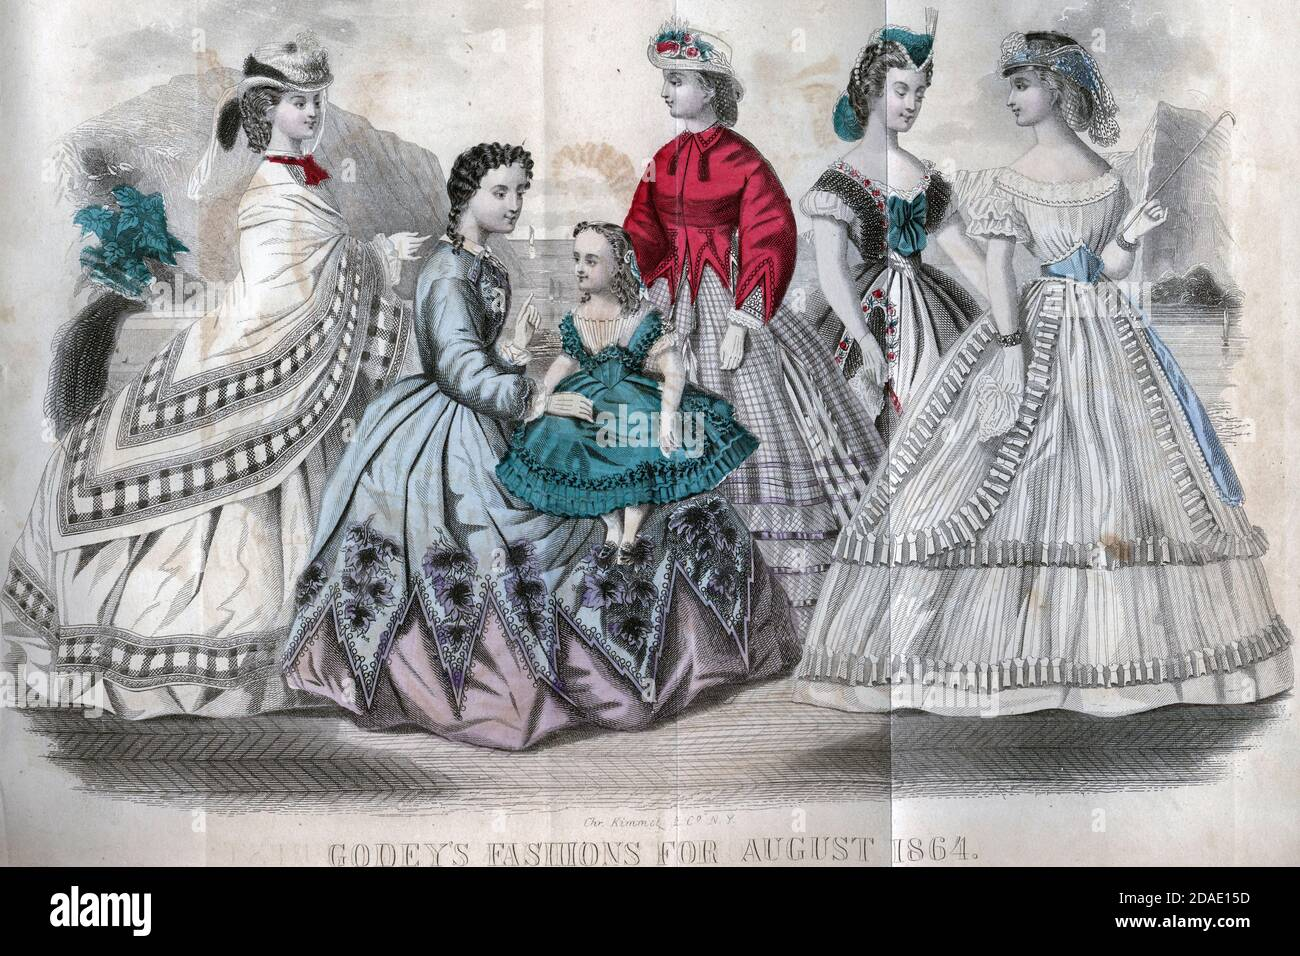 Godey's Fashion for August 1864 from Godey's Lady's Book and Magazine, August, 1864, Volume LXIX, (Volume 69), Philadelphia, Louis A. Godey, Sarah Josepha Hale, Stock Photo